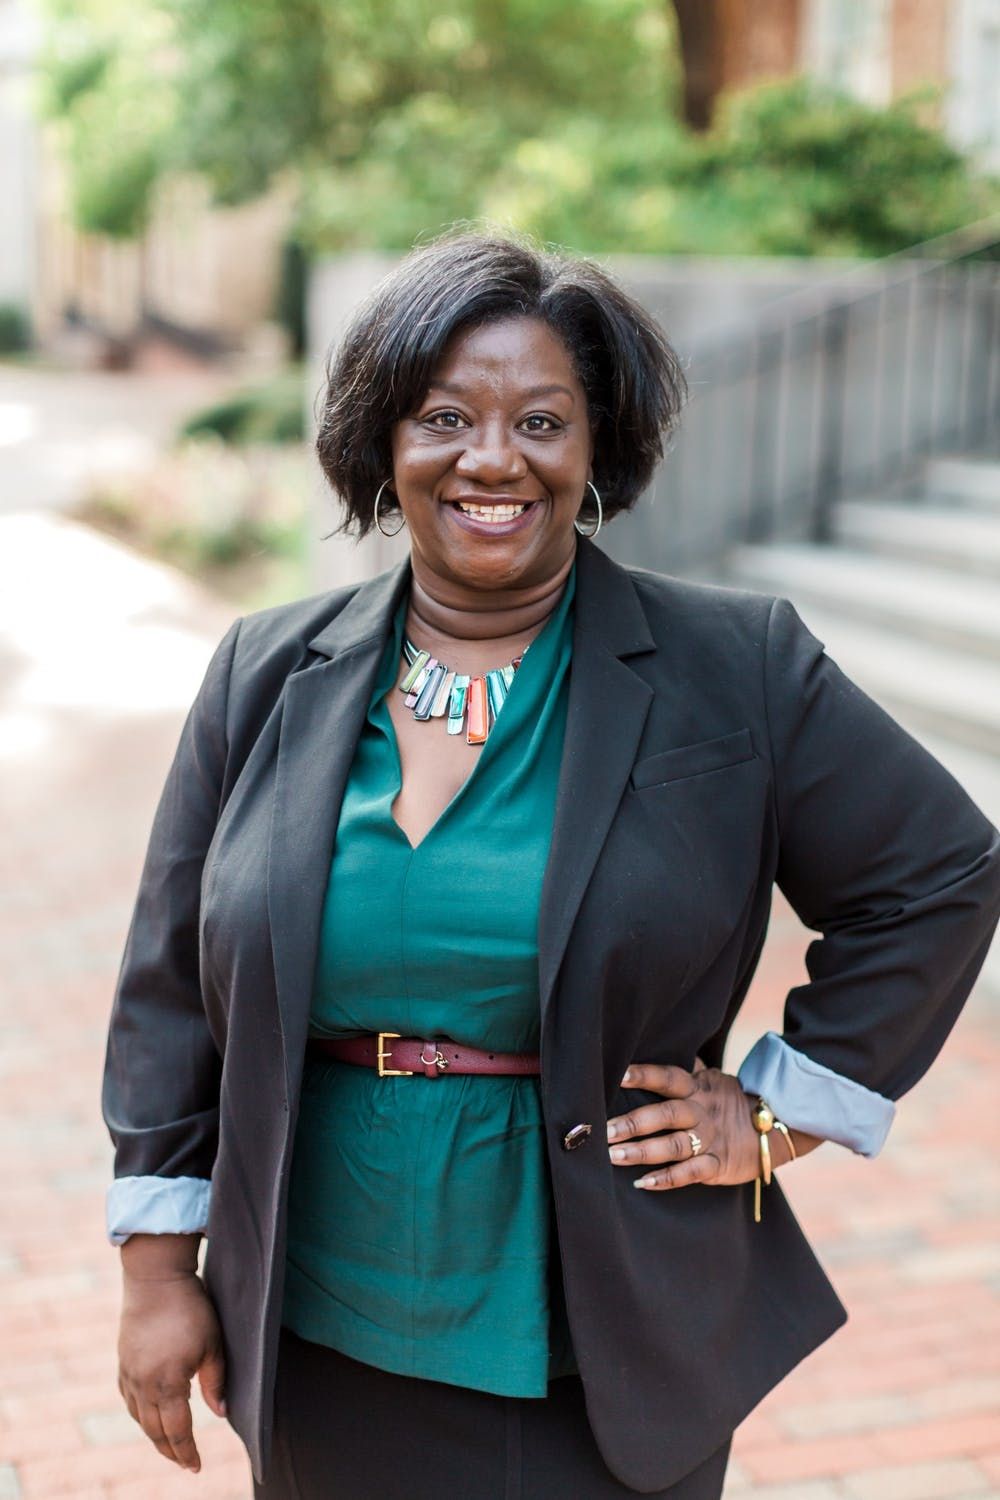 <p>Tressie McMillan Cottom, an associate professor at the UNC School of Information and Library Science was named a MacArthur Fellow in the foundation's Class of 2020. Photo courtesy of John D. and Catherine T. MacArthur Foundation.</p>